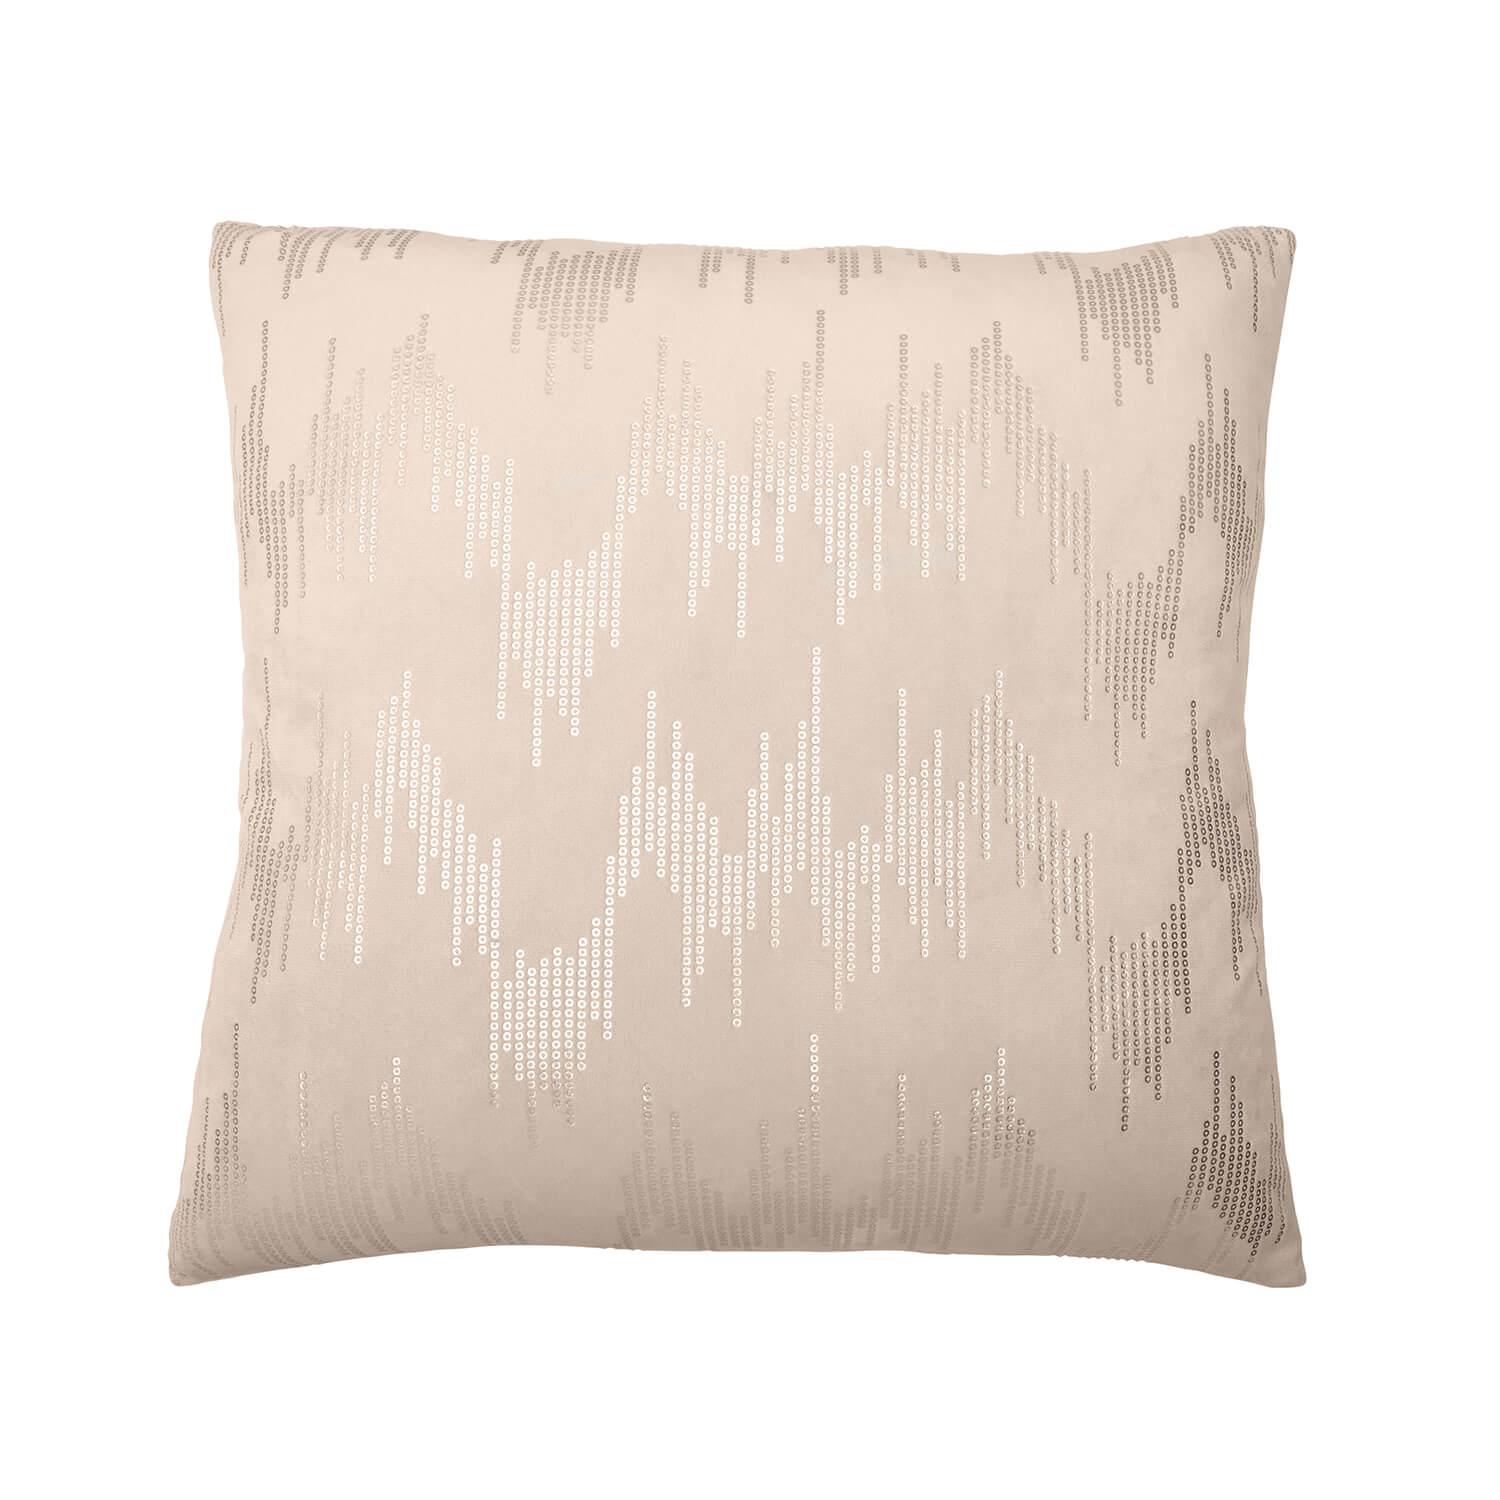 Sequin Velvet Cushion 45x45cm - Ivory